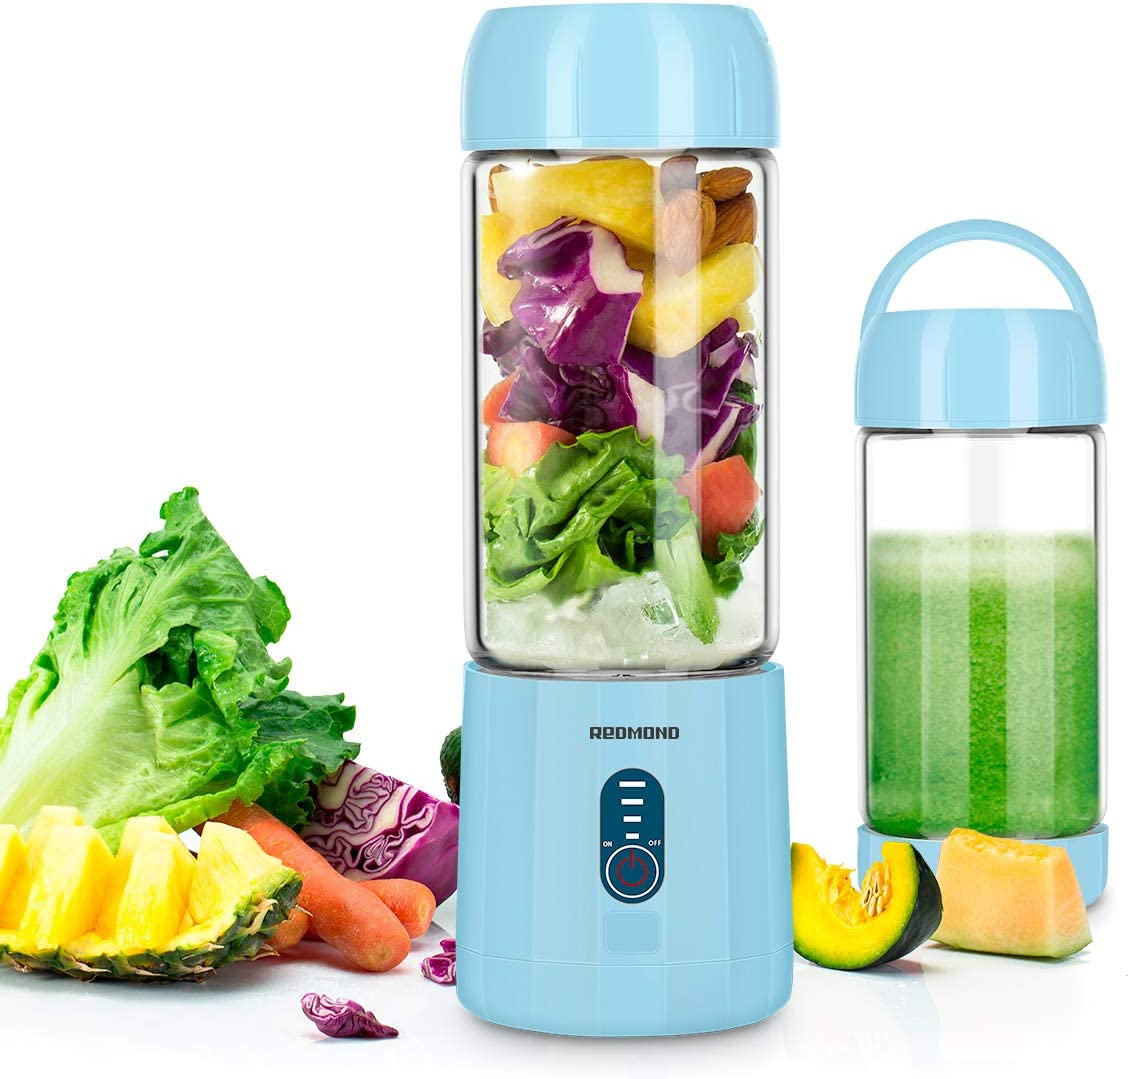 Portable Smoothie Blender, REDMOND USB Rechargeable Blender 4000mAh with 480ml Glass Travel Bottle, 6 Stainless Steel Blades, Battery Indicator for Shakes and Smoothies Outdoor (Baby Blue)